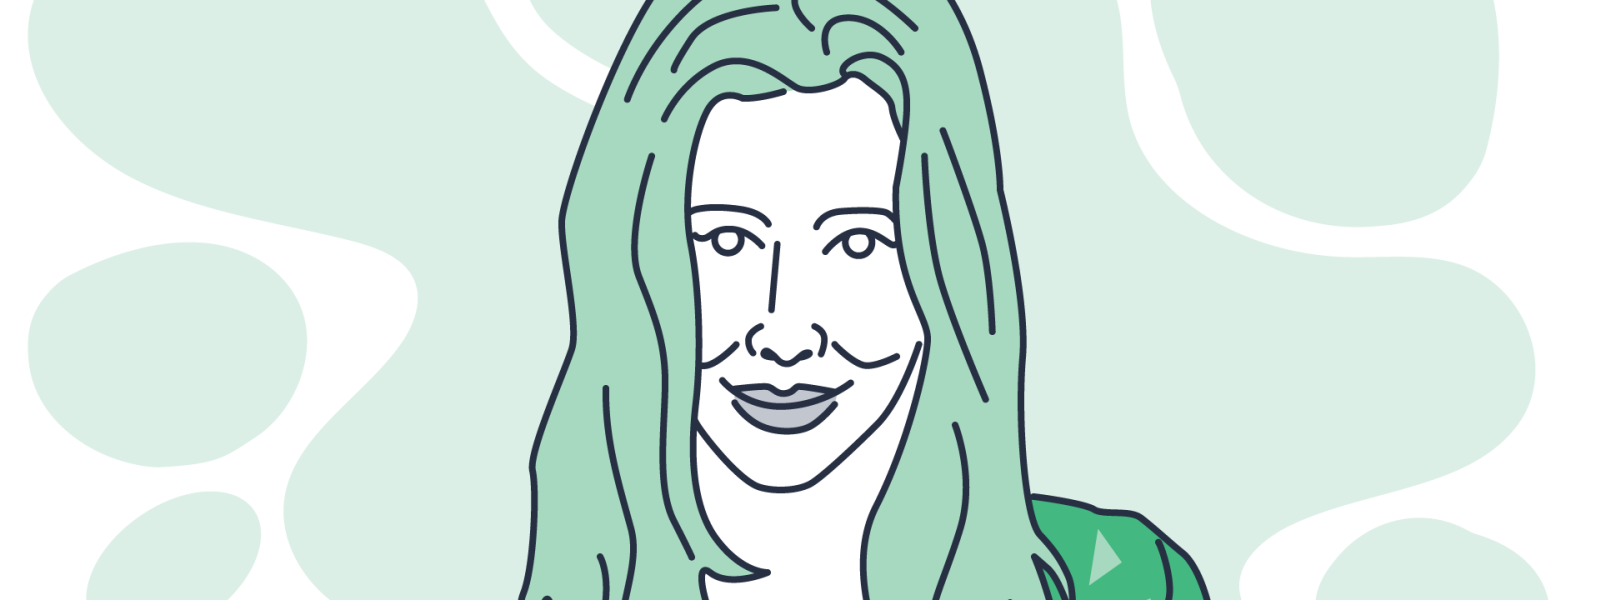 15 Successful Women on How to Strike the Right Work-Life Balance (or Not) by Amy Woodside